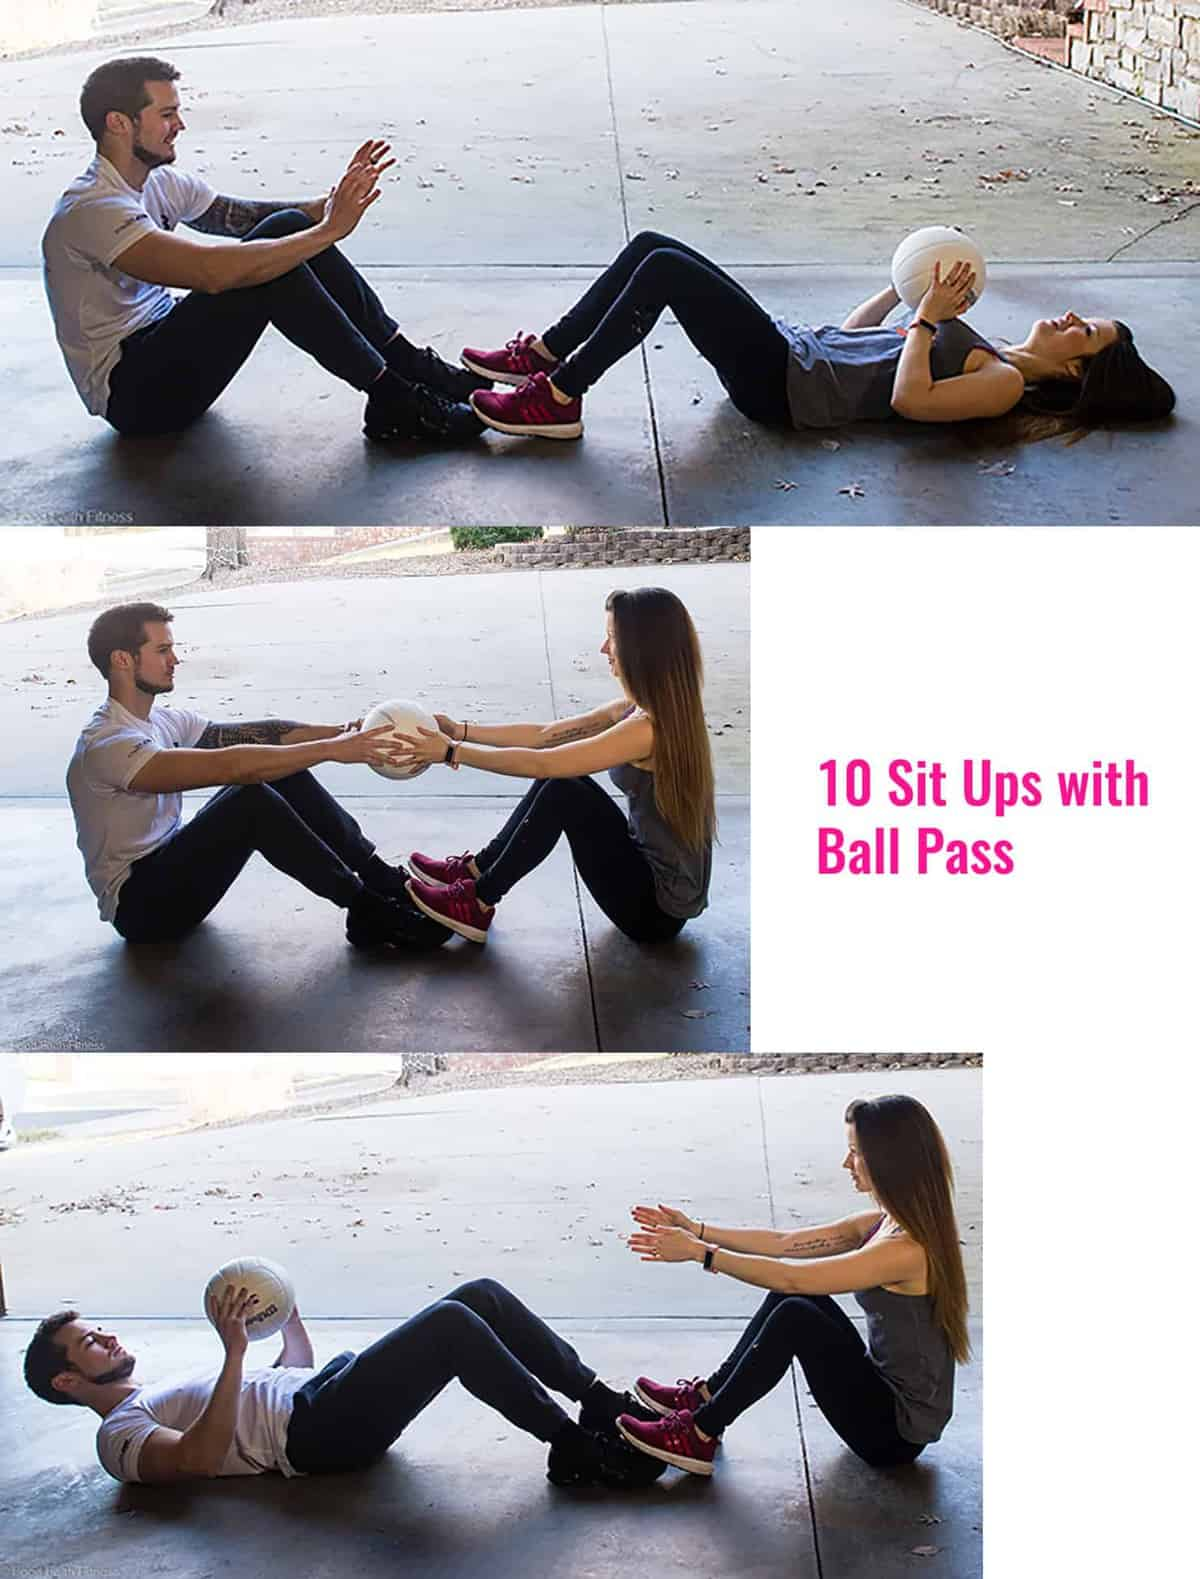 Quick At Home Partner Workout -This Quick, At Home Partner Workout is an easy way to get a workout in during busy seasons! Grab a partner and get your booty burning! | #Foodfaithfitness | #Workout #Fitness #Homeworkout #Healthy